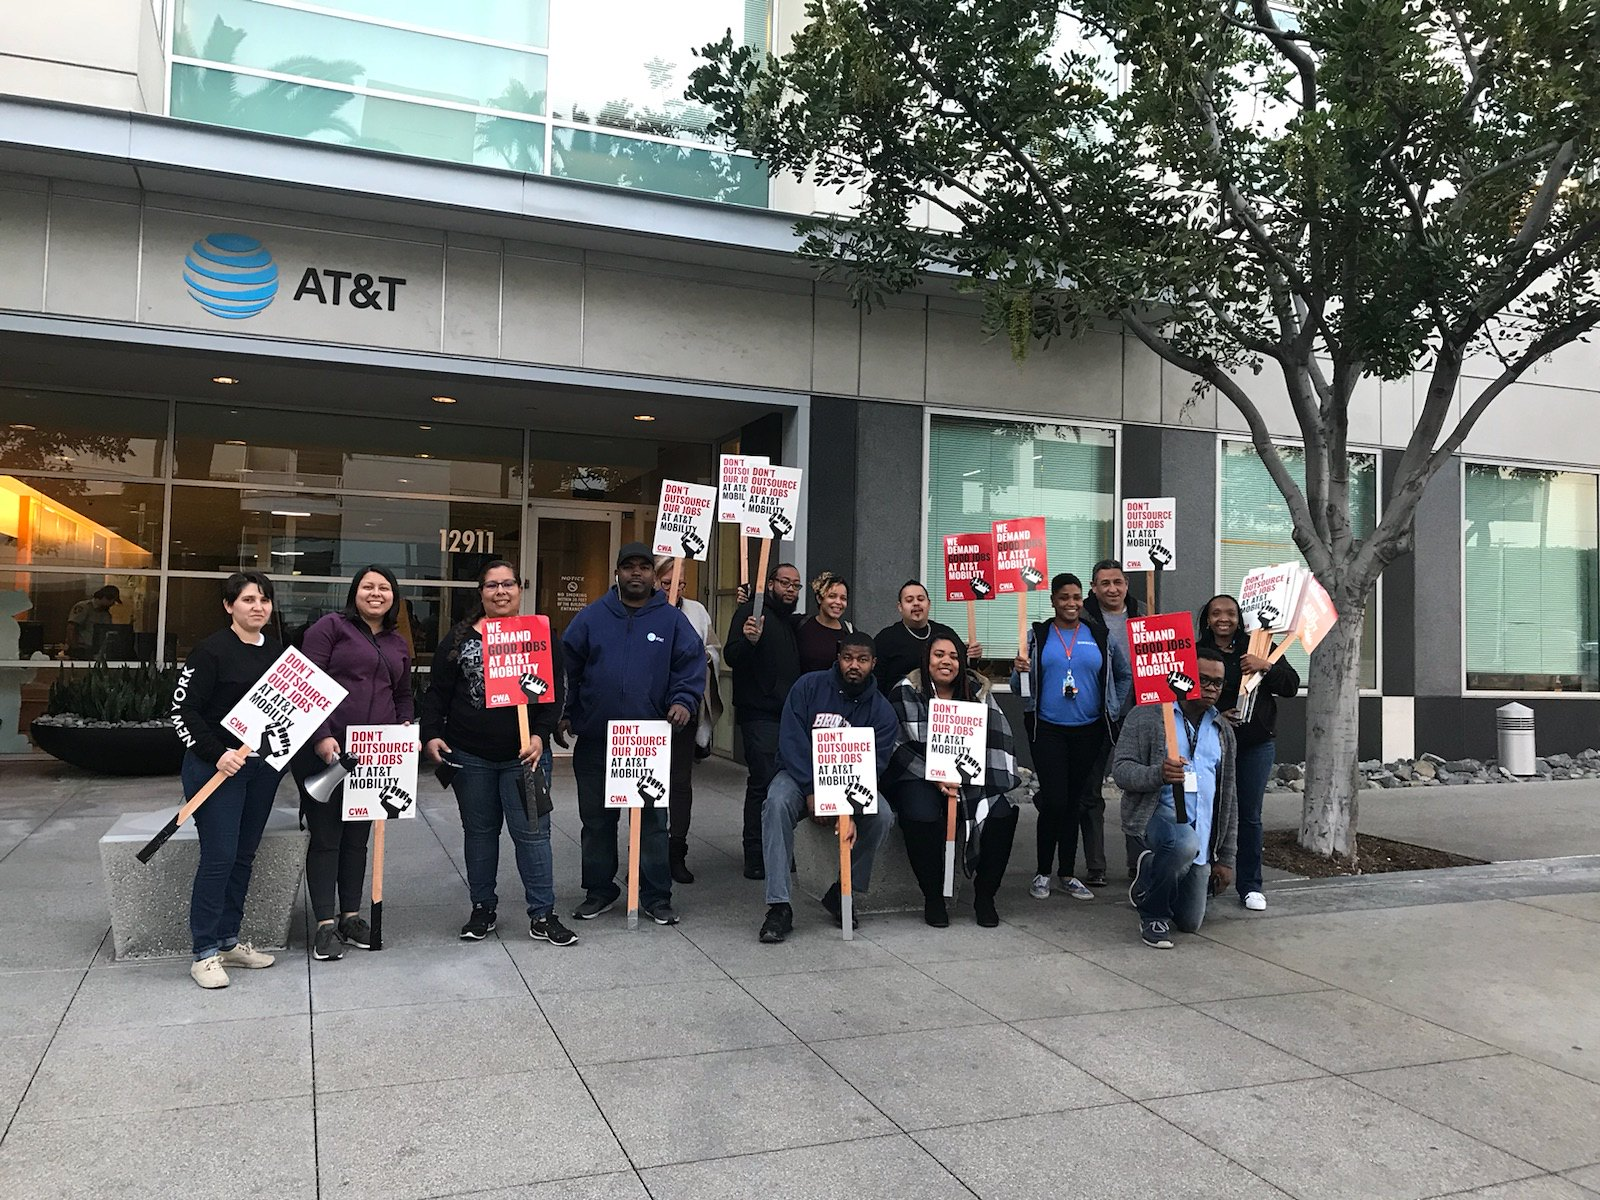 Local 9400 at Cerritos AT&T